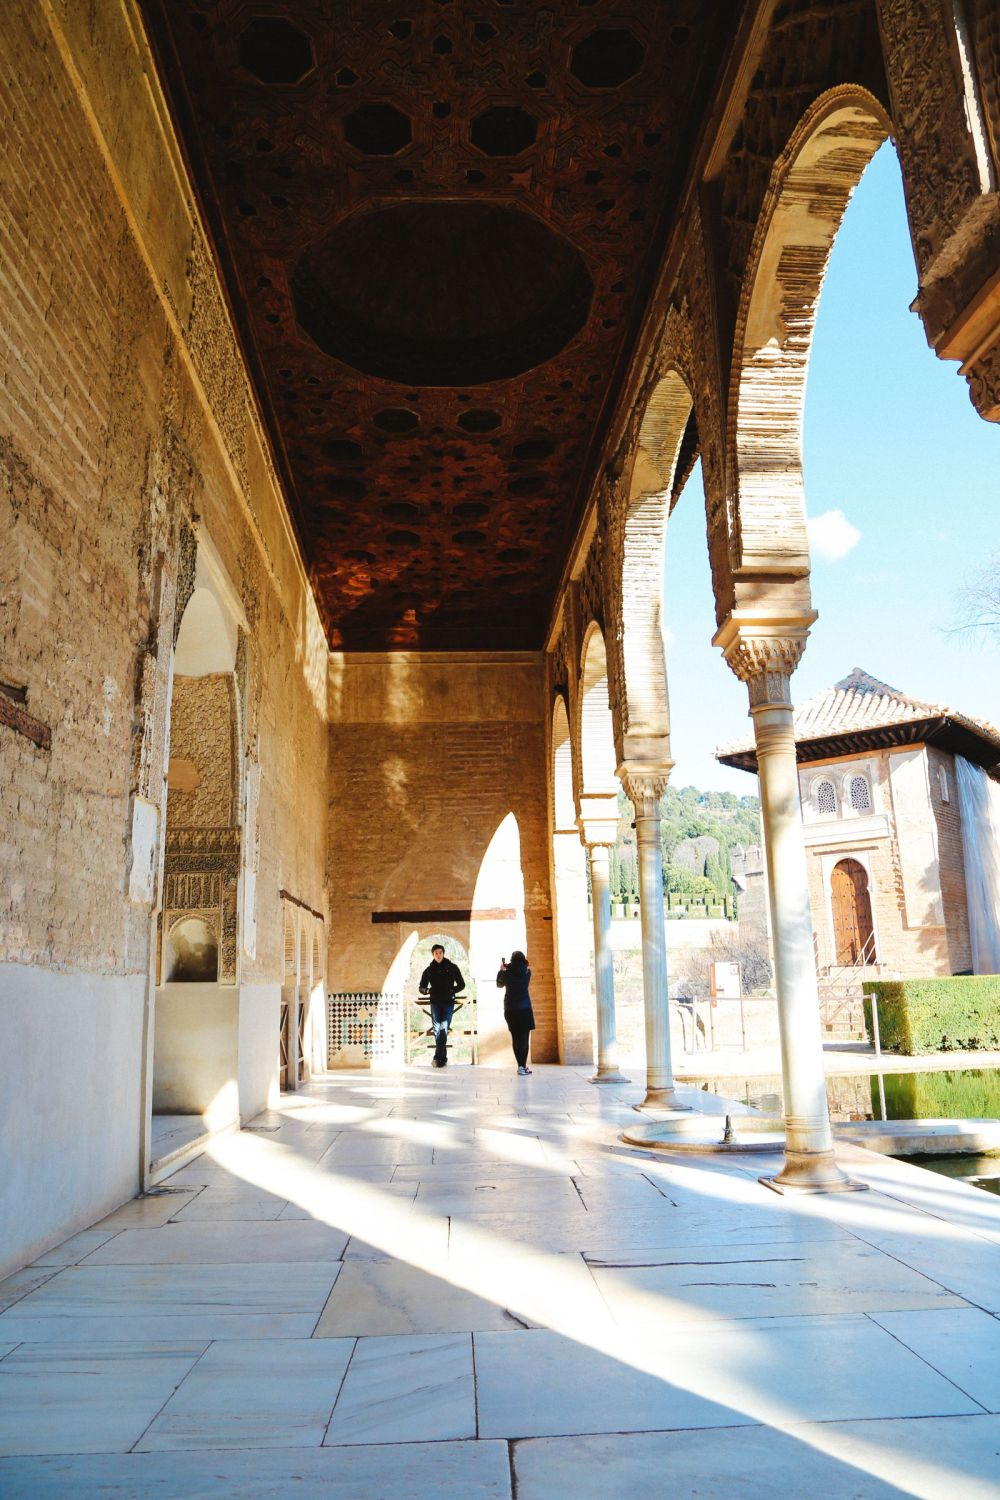 The Amazingly Intricate Alhambra Palace of Spain (89)